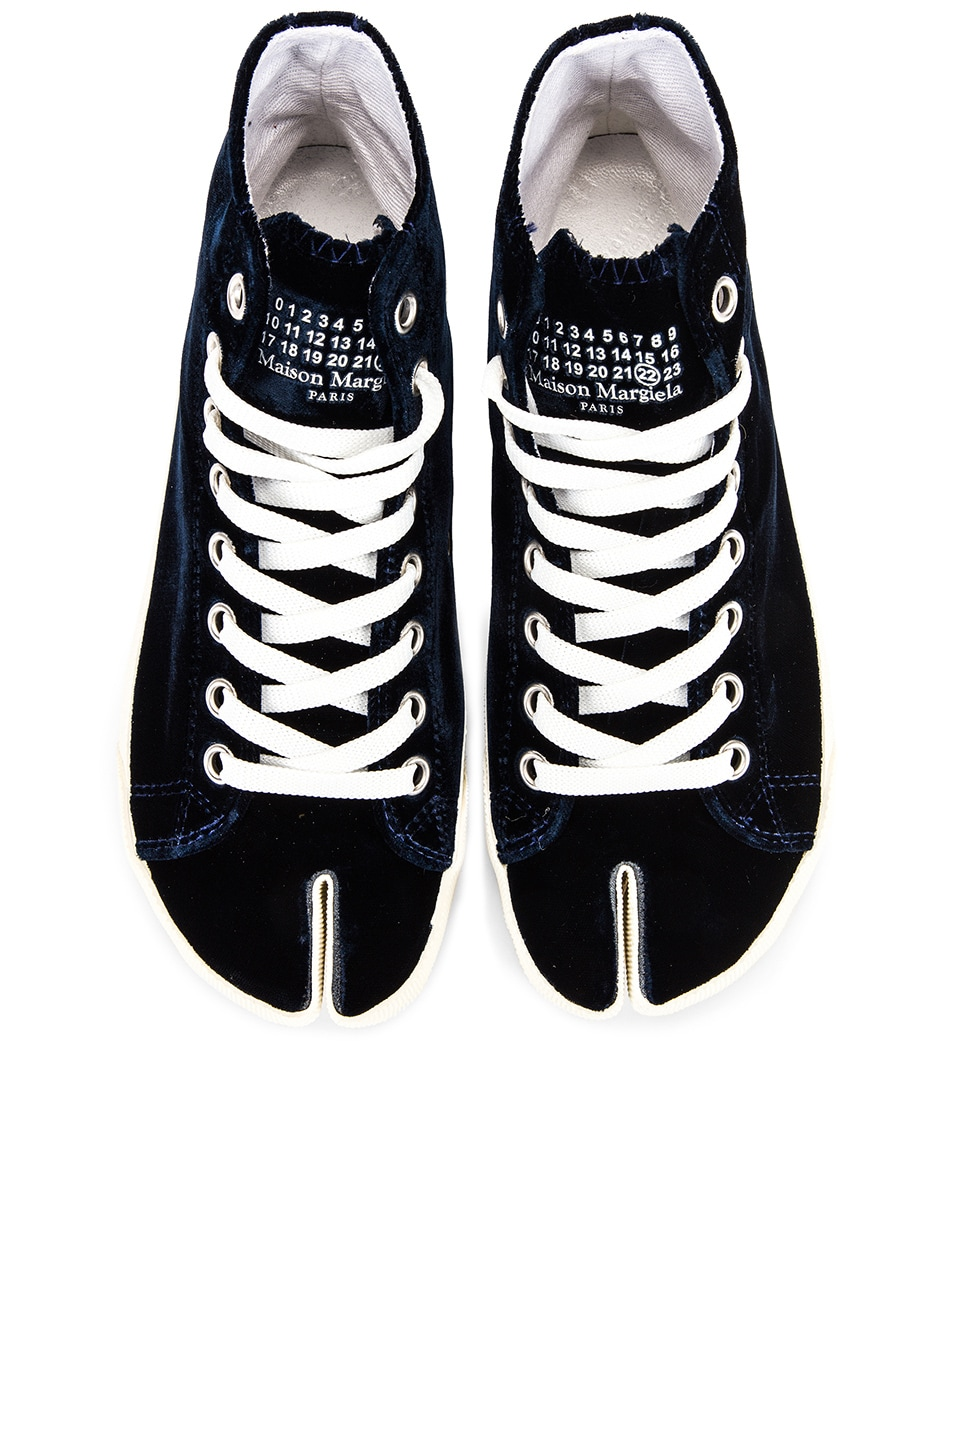 Image 1 of Maison Margiela Toe High Top Sneakers in Navy Blue